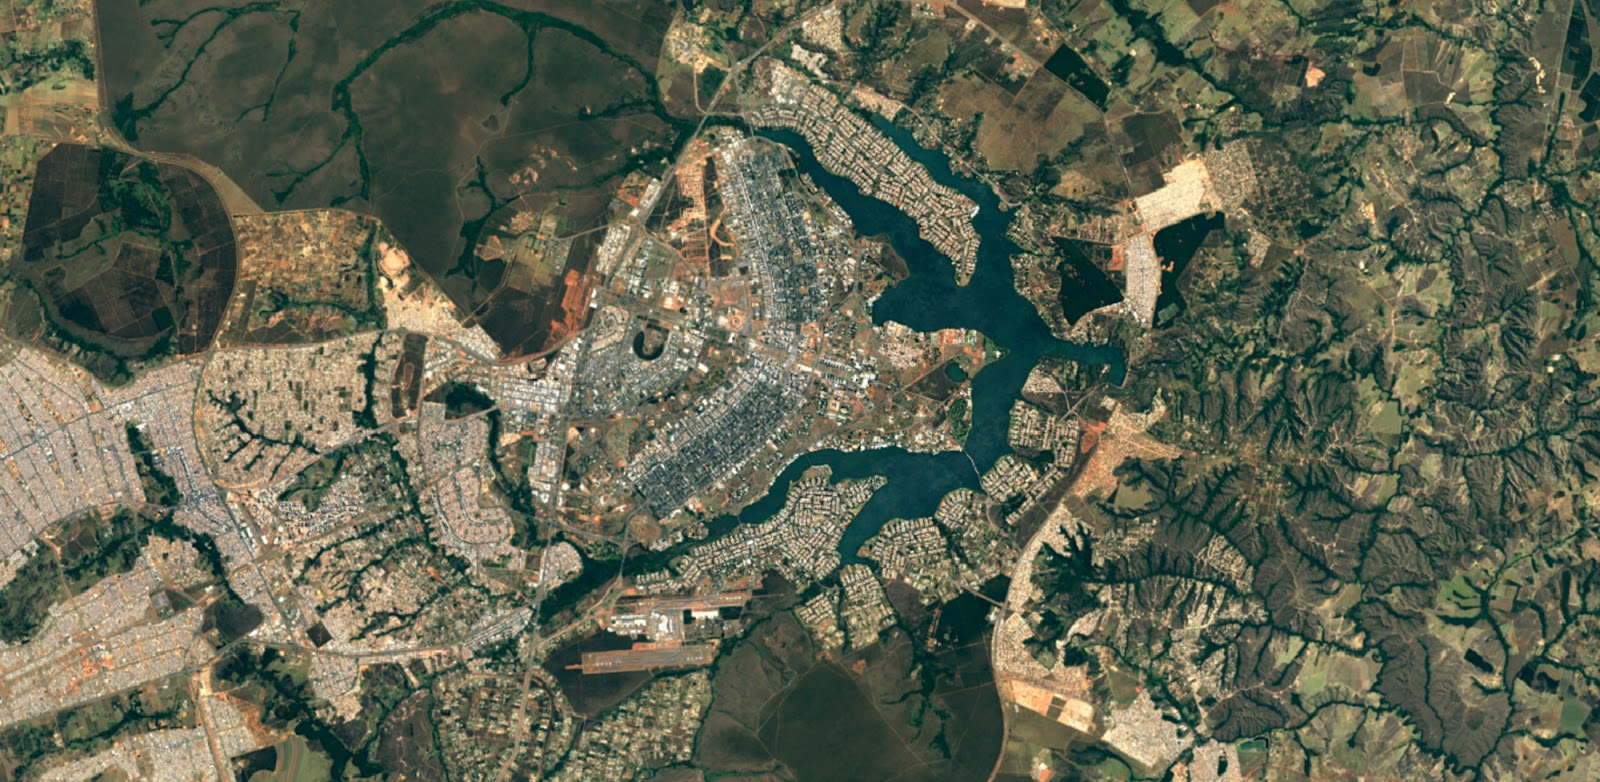 The city of Brasilia, in Brazil after Google Earth upgrape